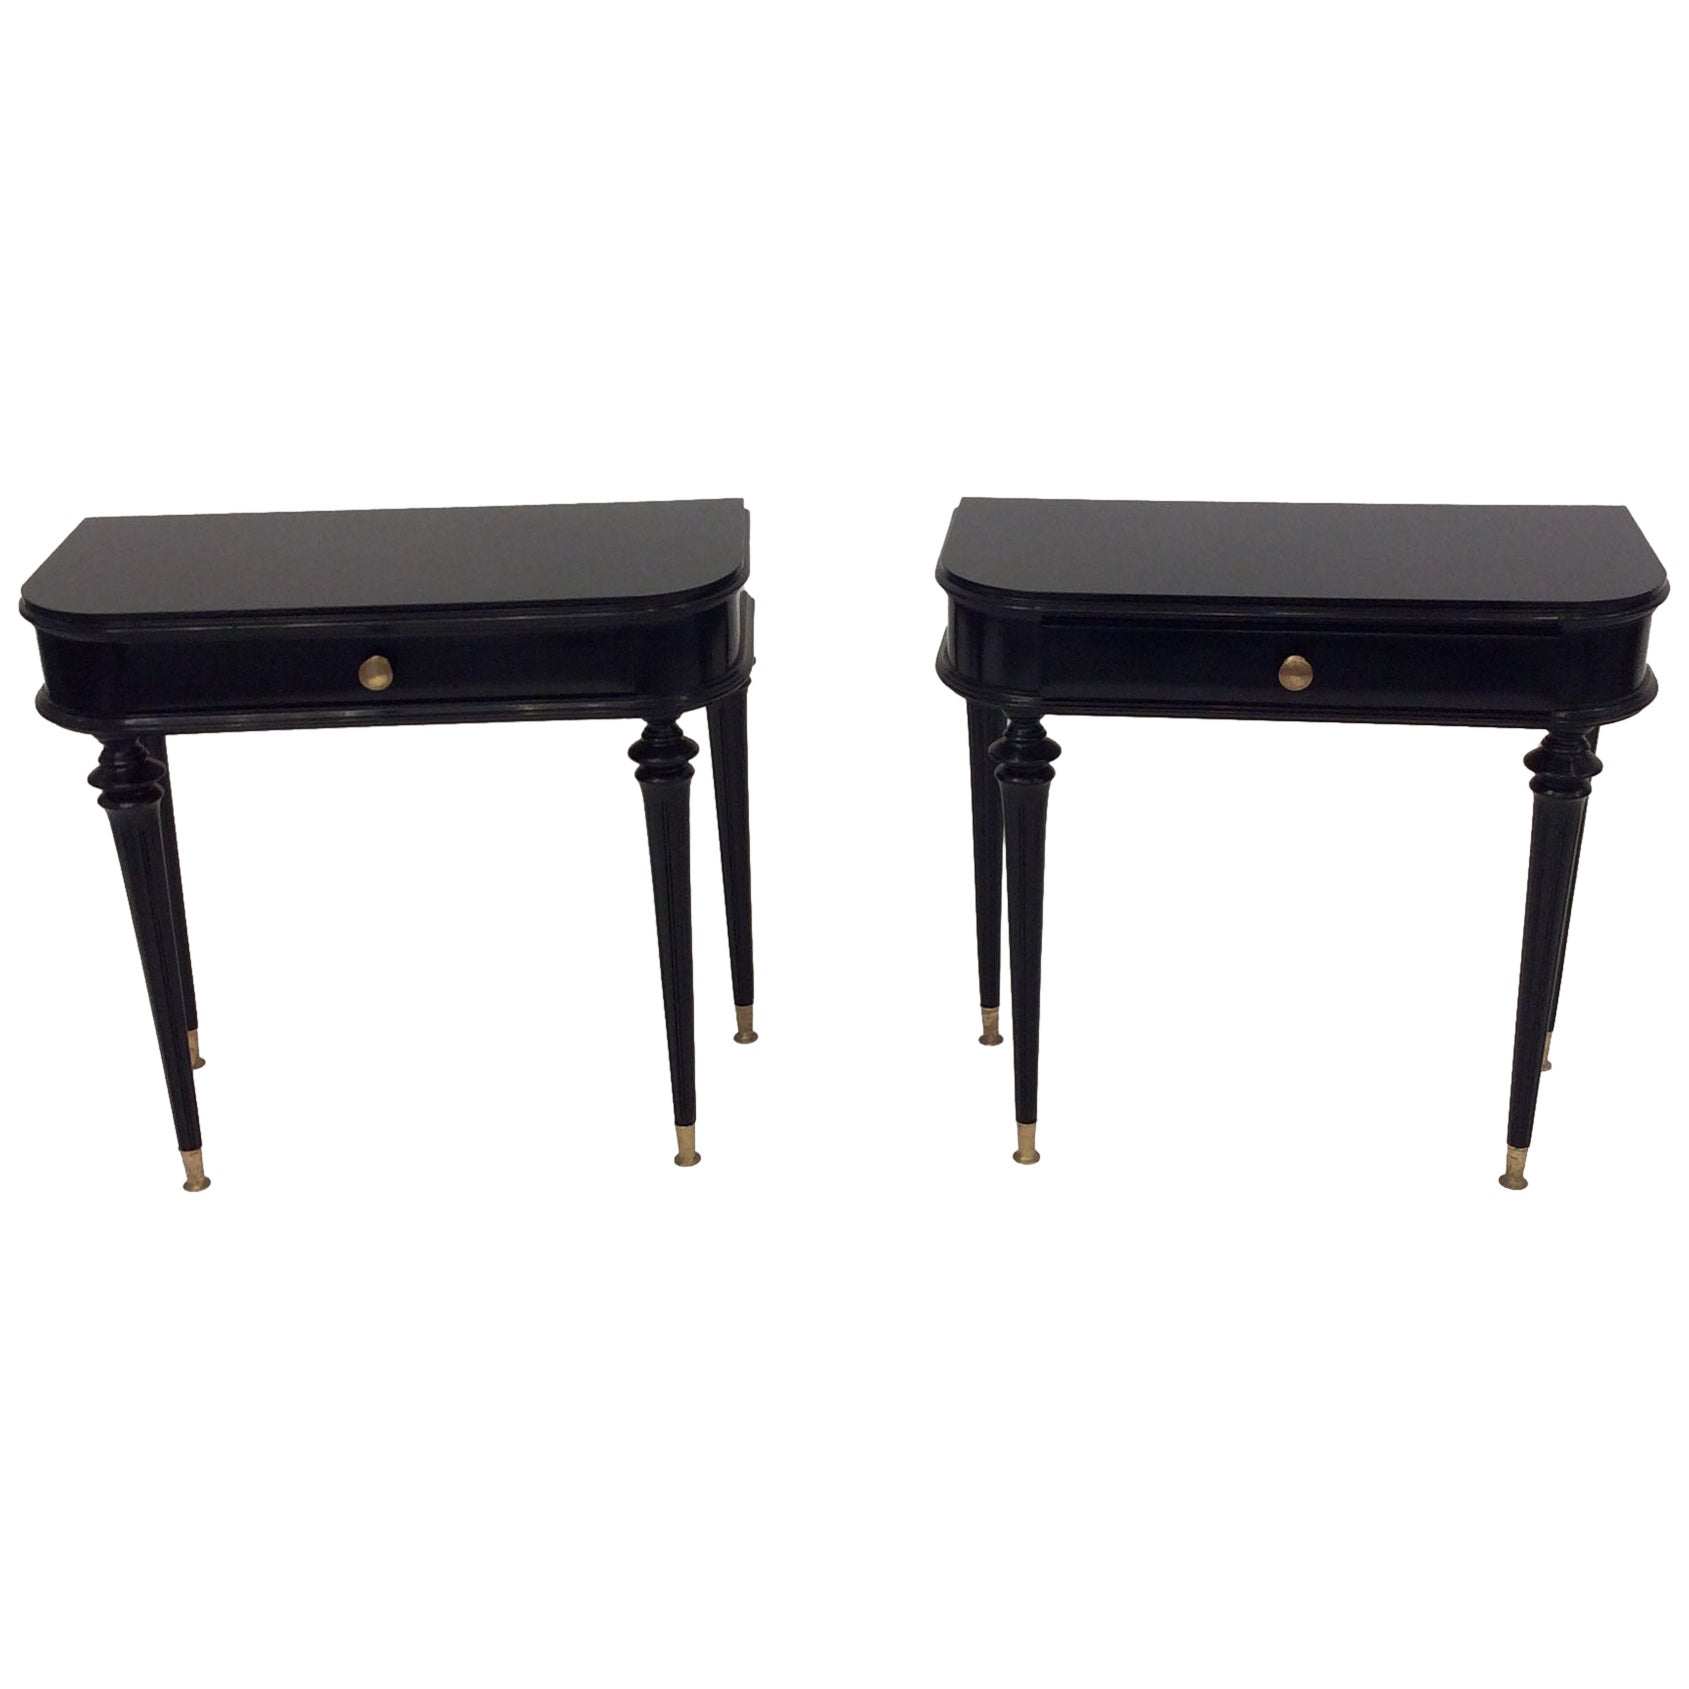 Pair of Italian Black Lacquered Side Tables Attributed to Paolo Buffa circa 1940